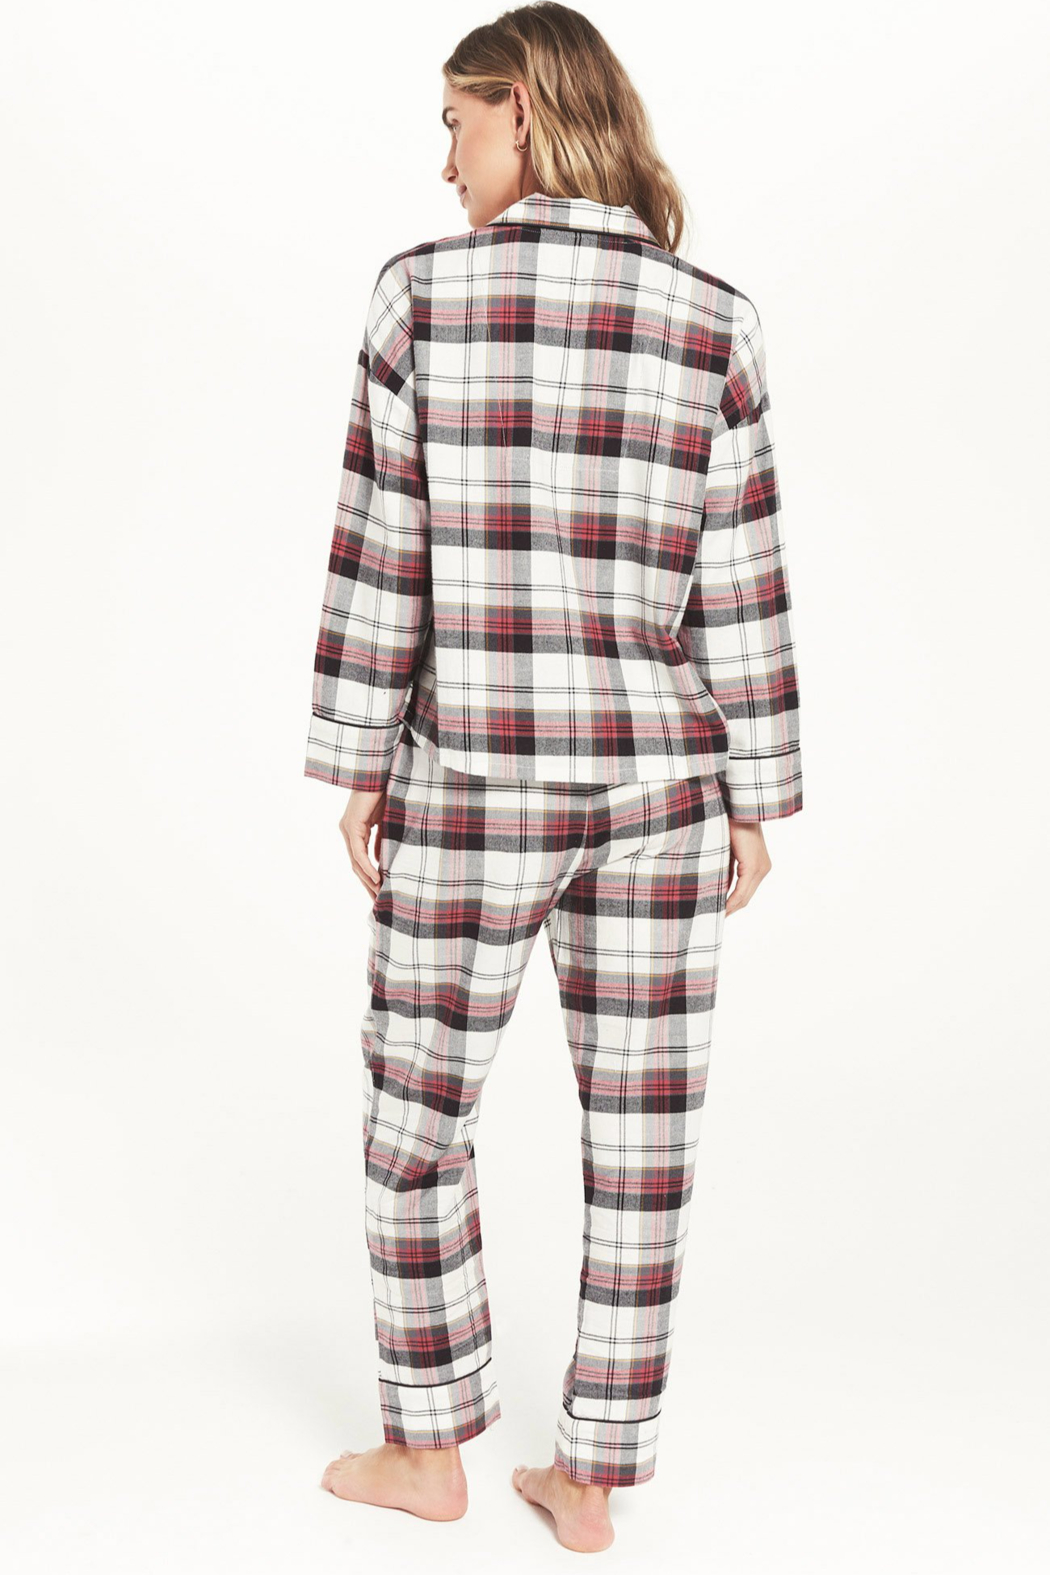 z supply DREAM STATE PLAID PJ SET - Side Cropped Image